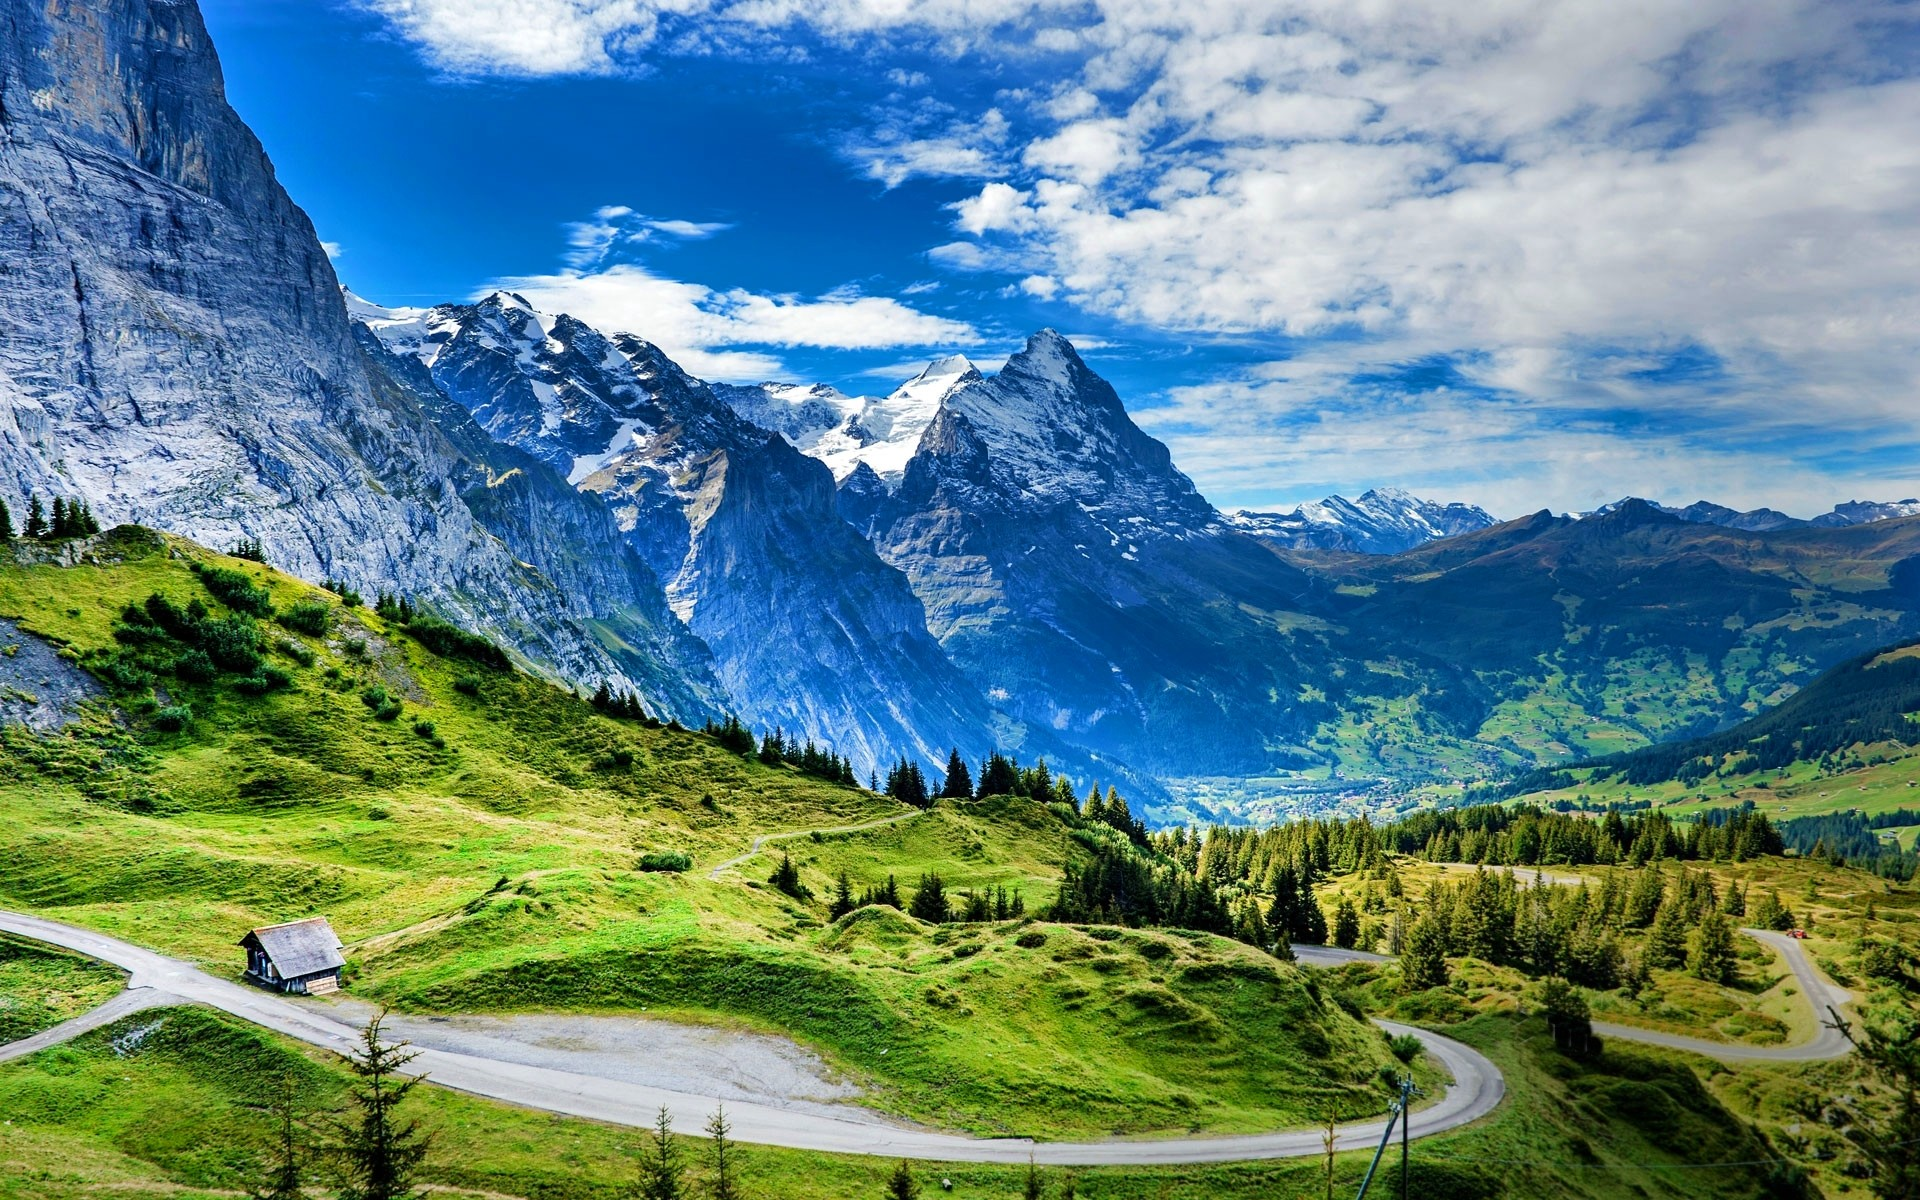 Swiss alps wallpaper 61 images - Swiss alps wallpaper ...